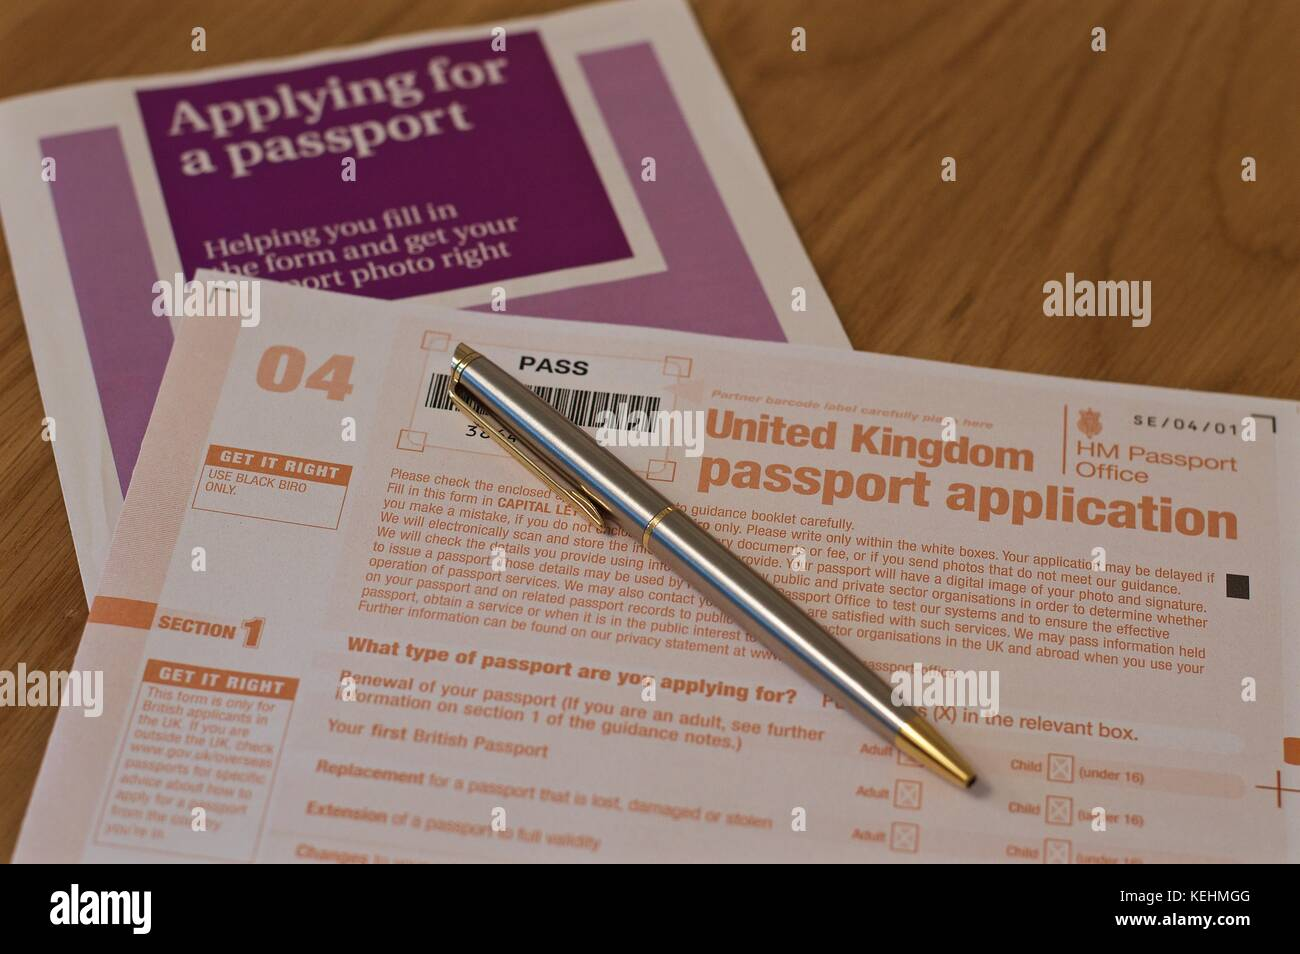 Passport application form stock photos passport application form uk passport application form with instructions and pen ready to fill out stock image falaconquin